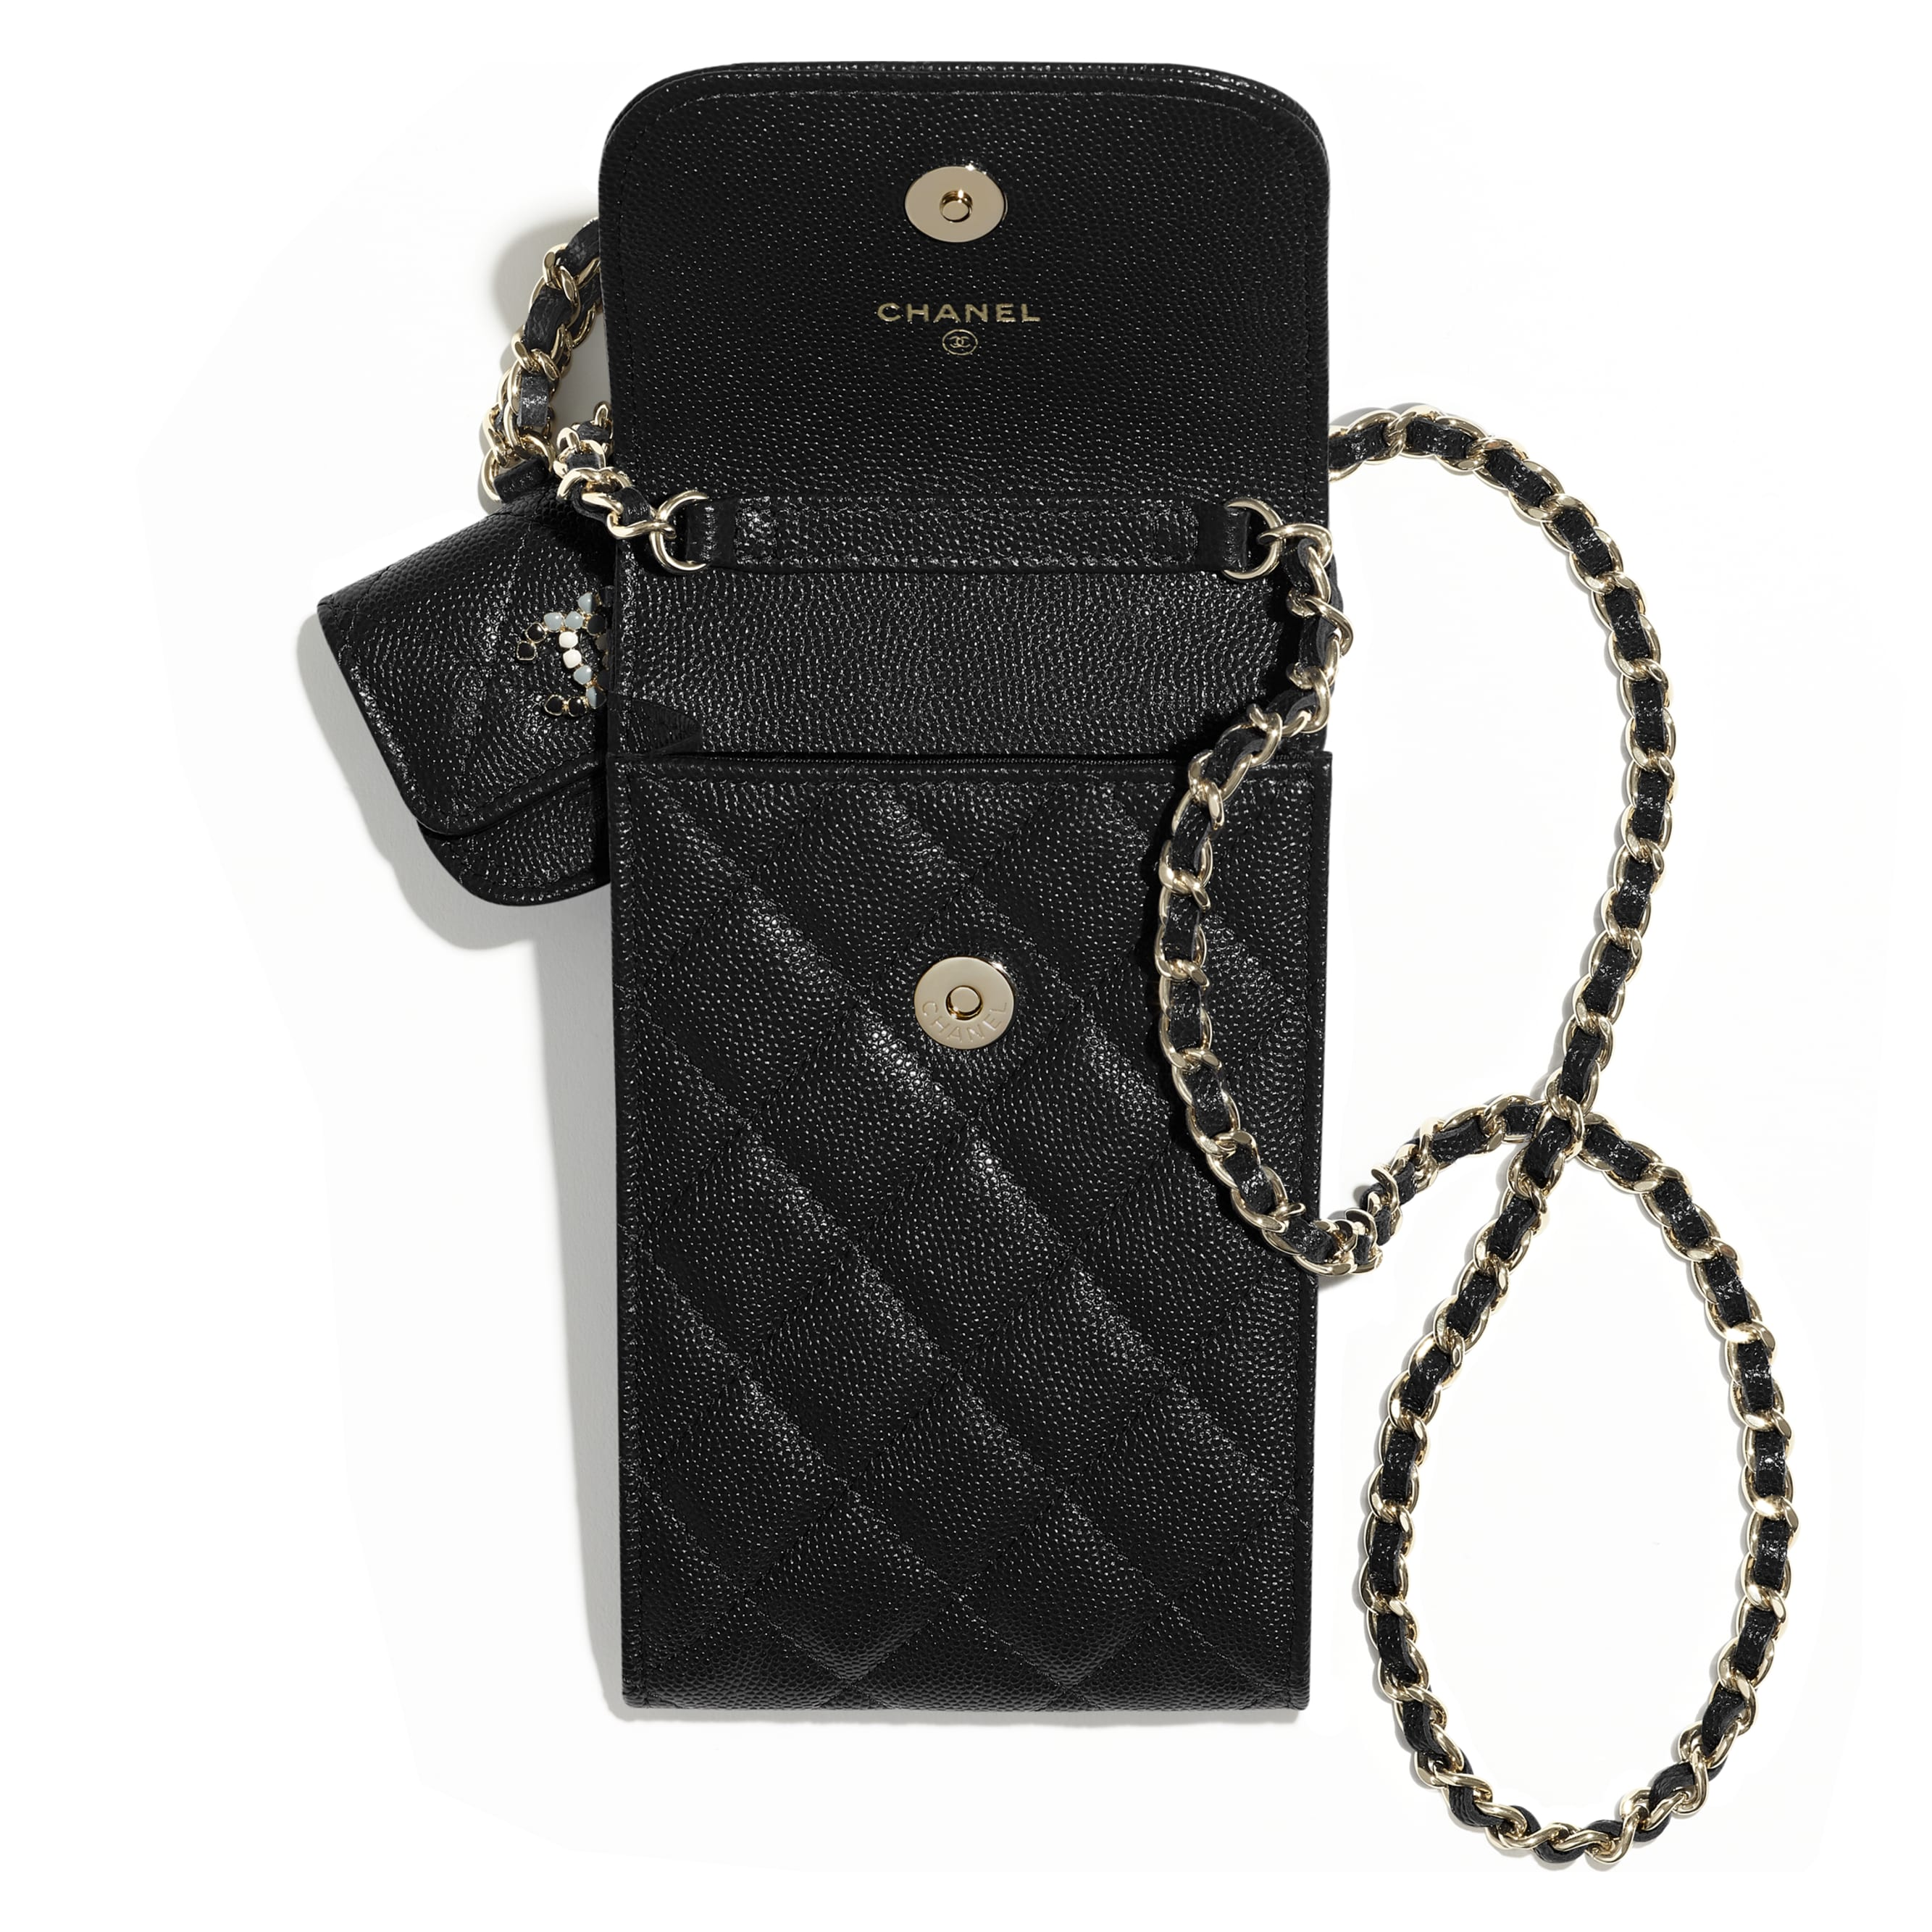 Phone & Airpods Case with Chain - Black - Grained Calfskin & Laquered Gold-Tone Metal - CHANEL - Alternative view - see standard sized version